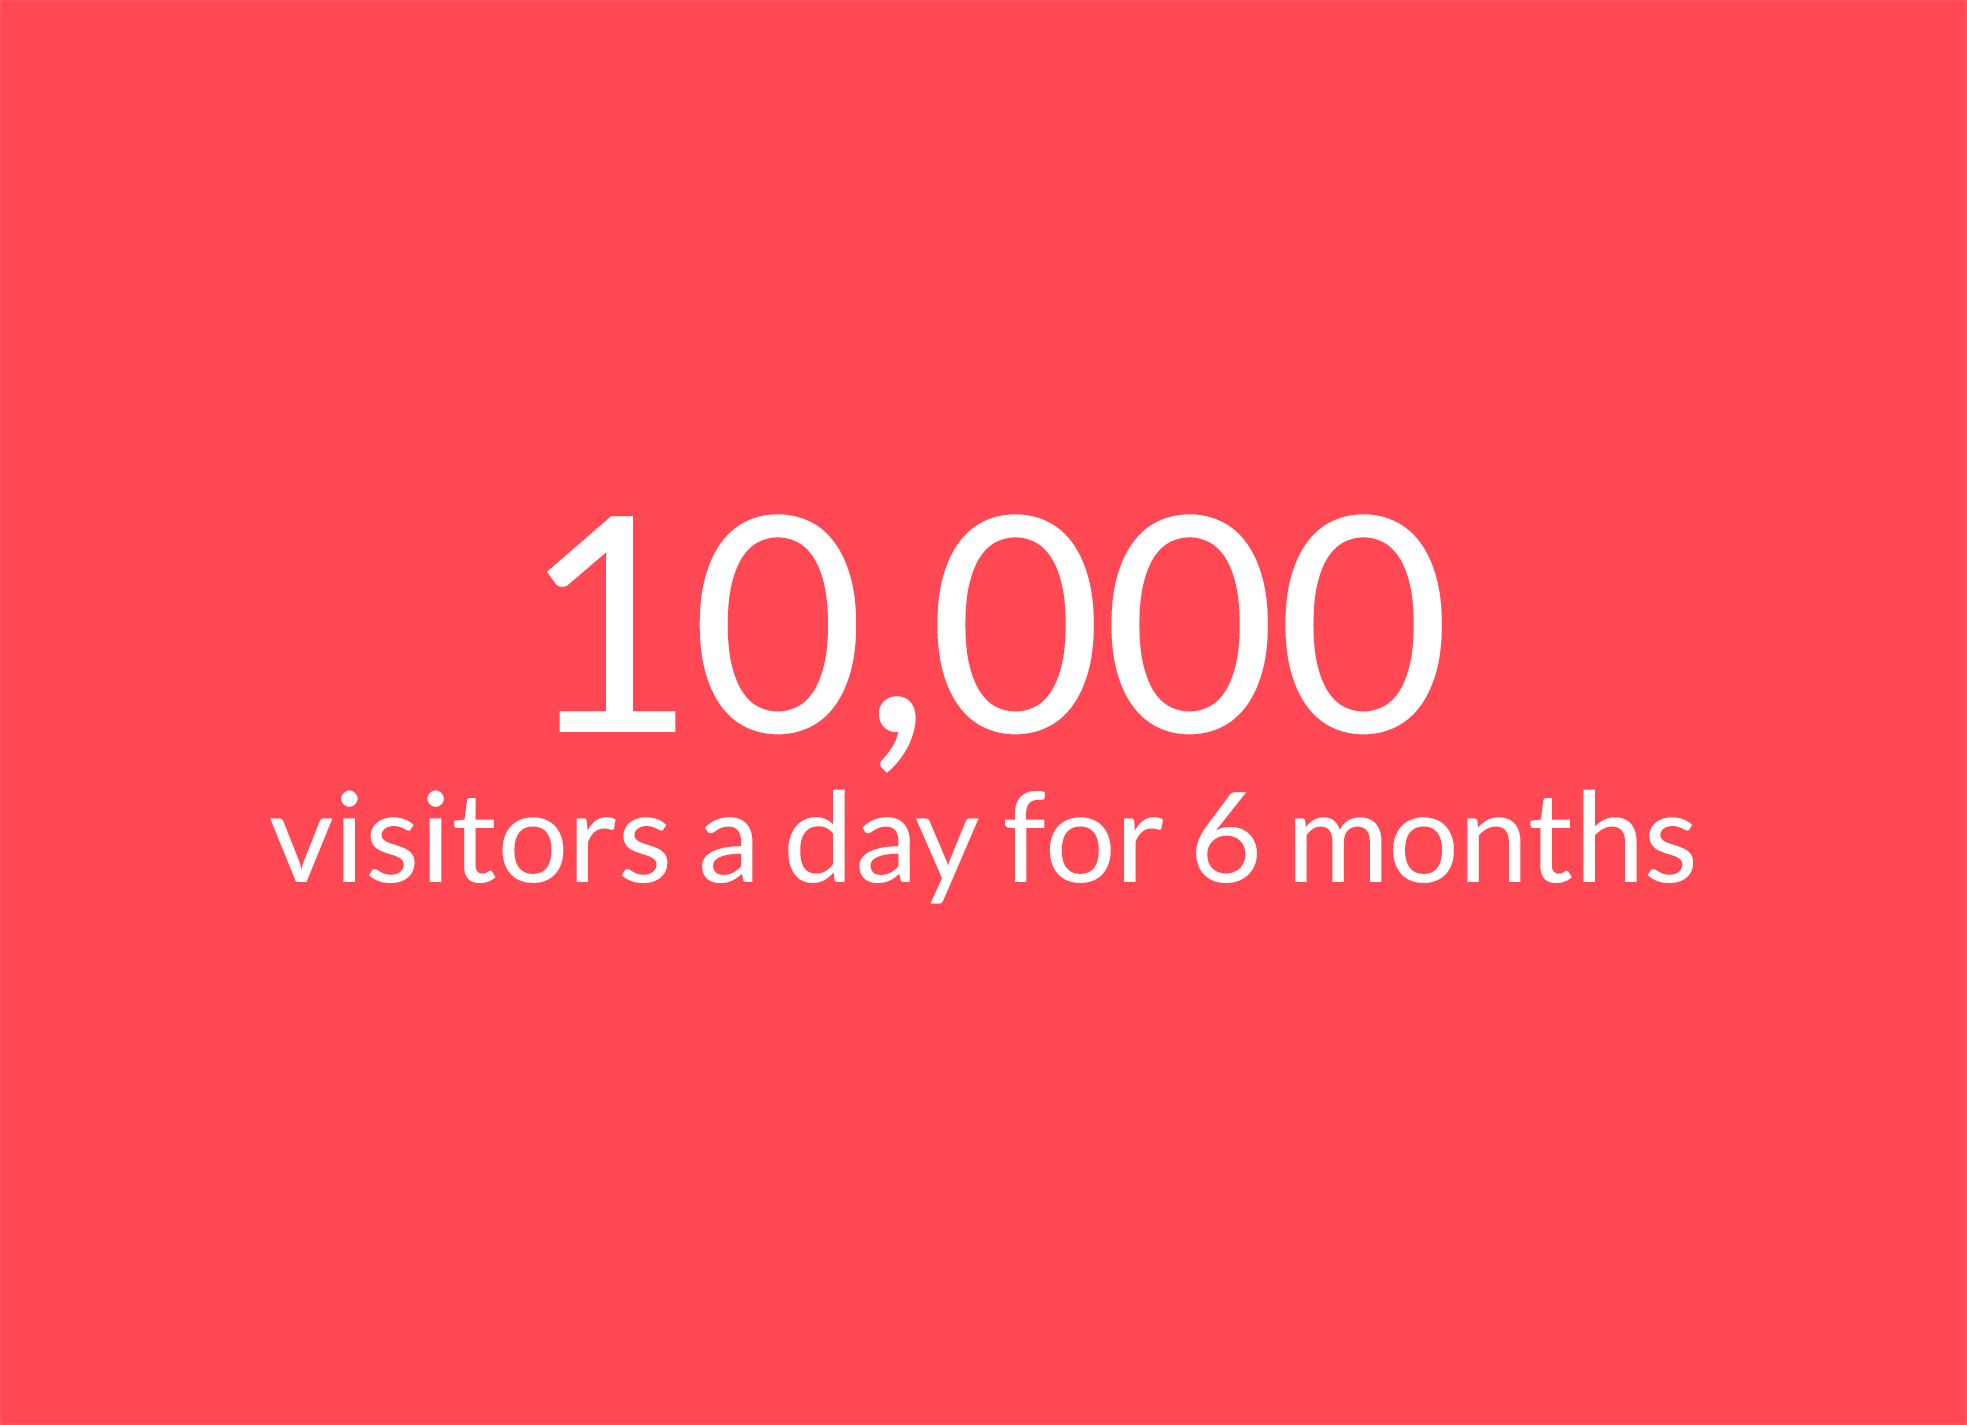 Text: 10,000 visitors a day for 6 months